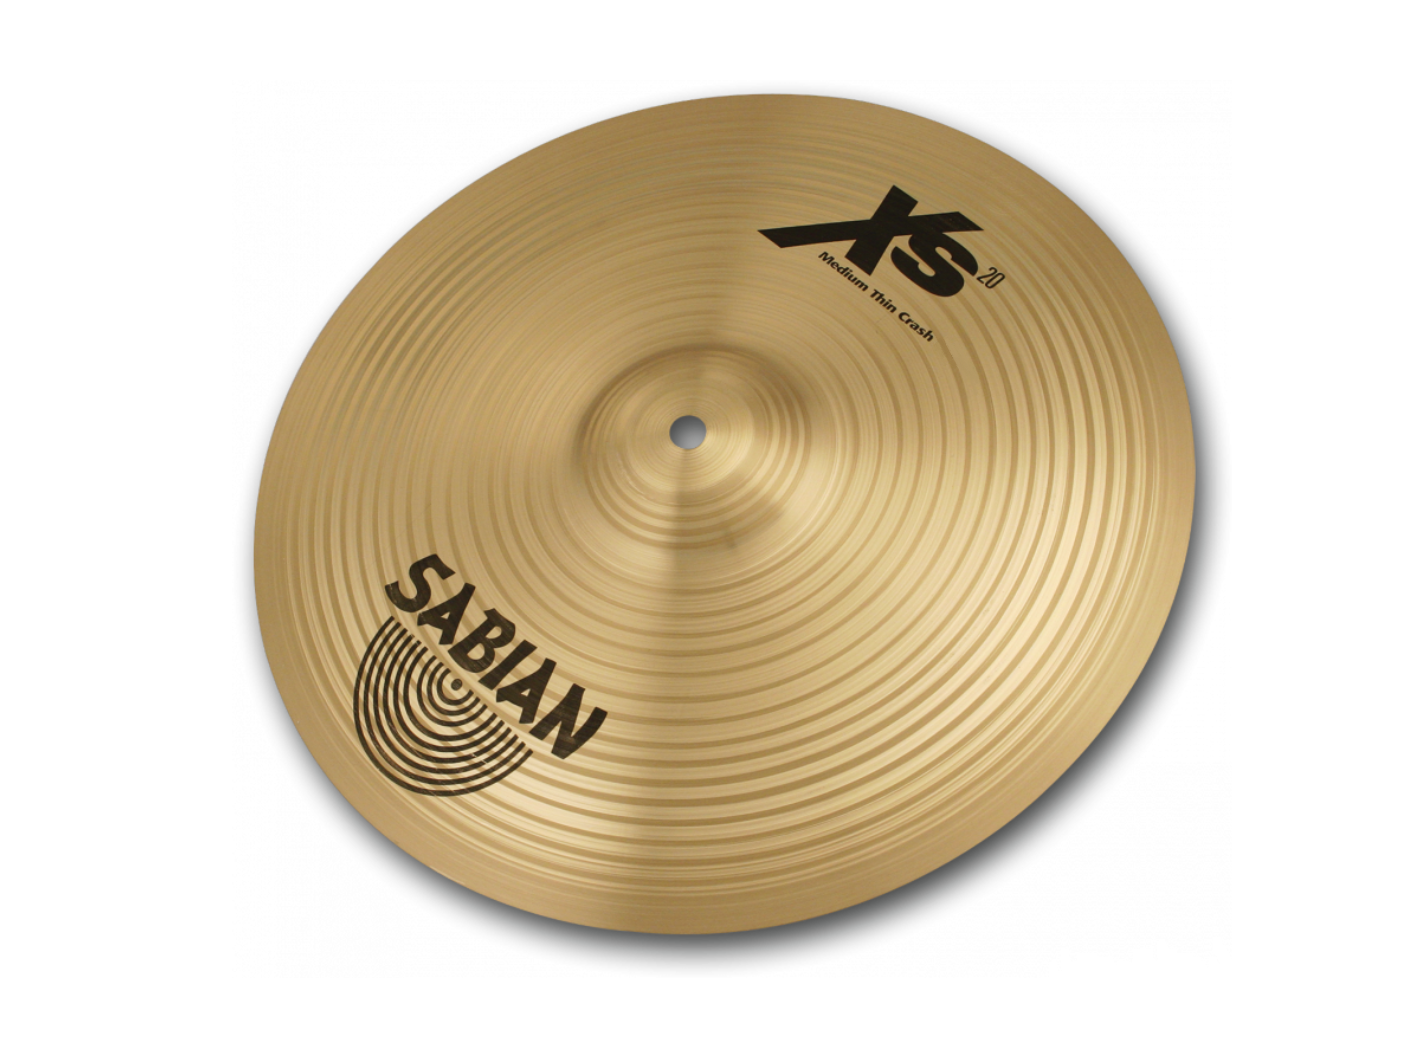 Sabian XS20 Medium-Thin Crash Cymbal 18